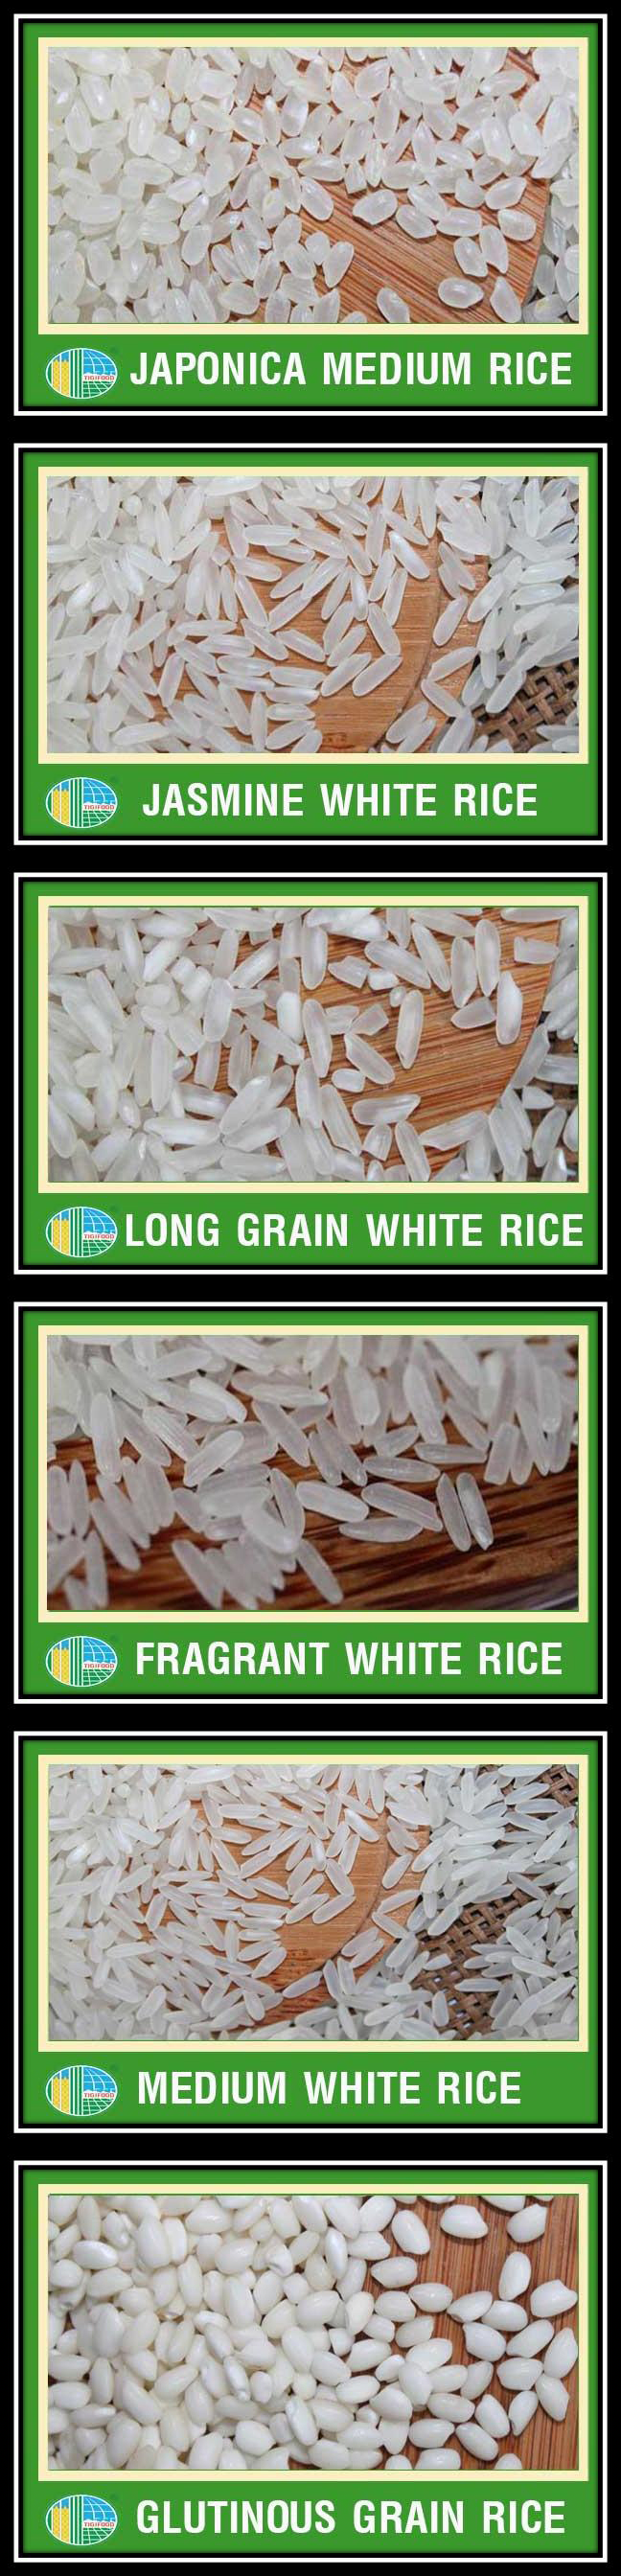 BEST SELLING-GOOD RICE FOR GOLDEN HEALTH- FRAGRANT WHITE RICE 5% BROKEN-LOWEST PRICE FROM VIETNAM